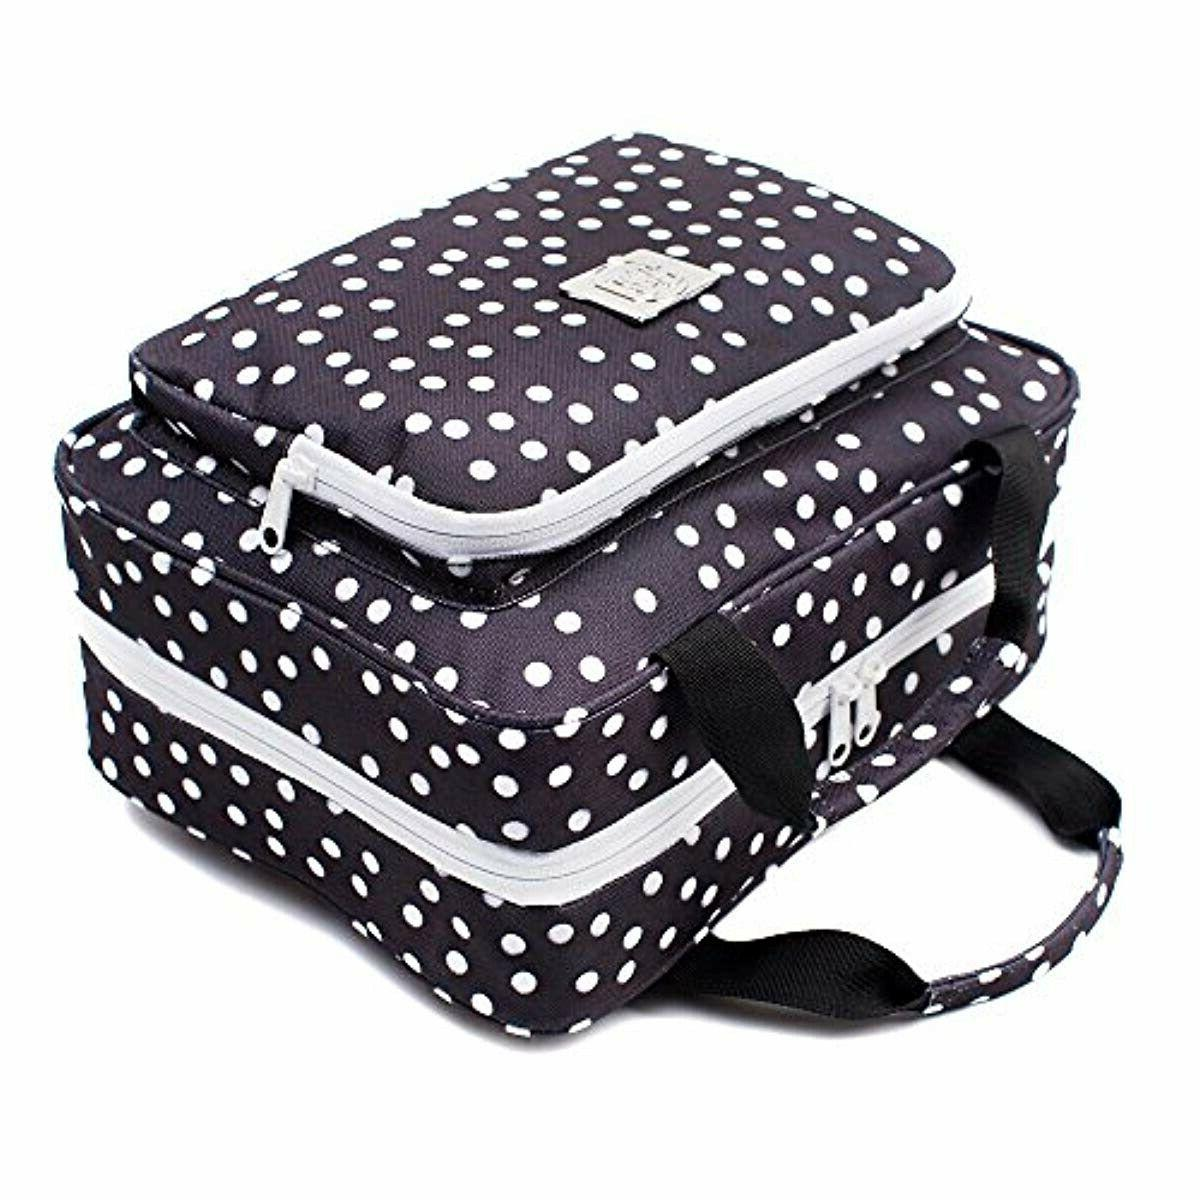 Large Versatile Travel Bag Travel